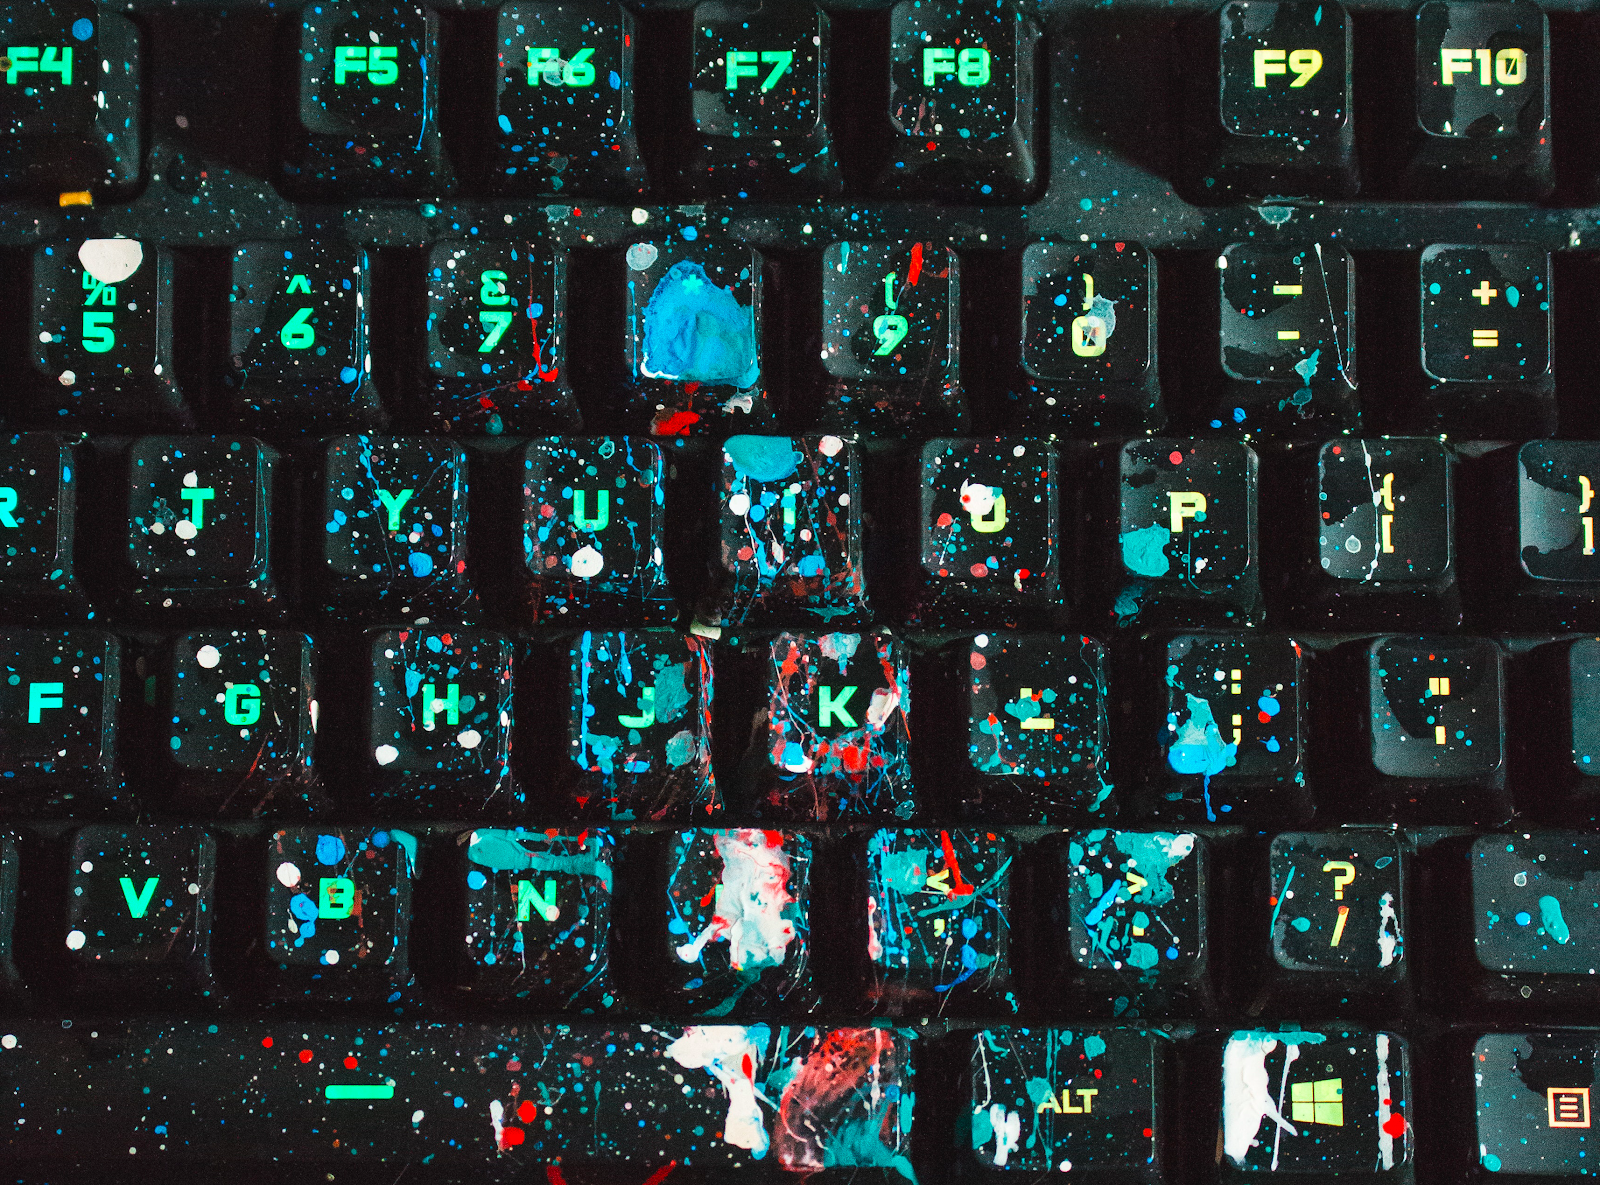 Image of splatter painted keyboard.